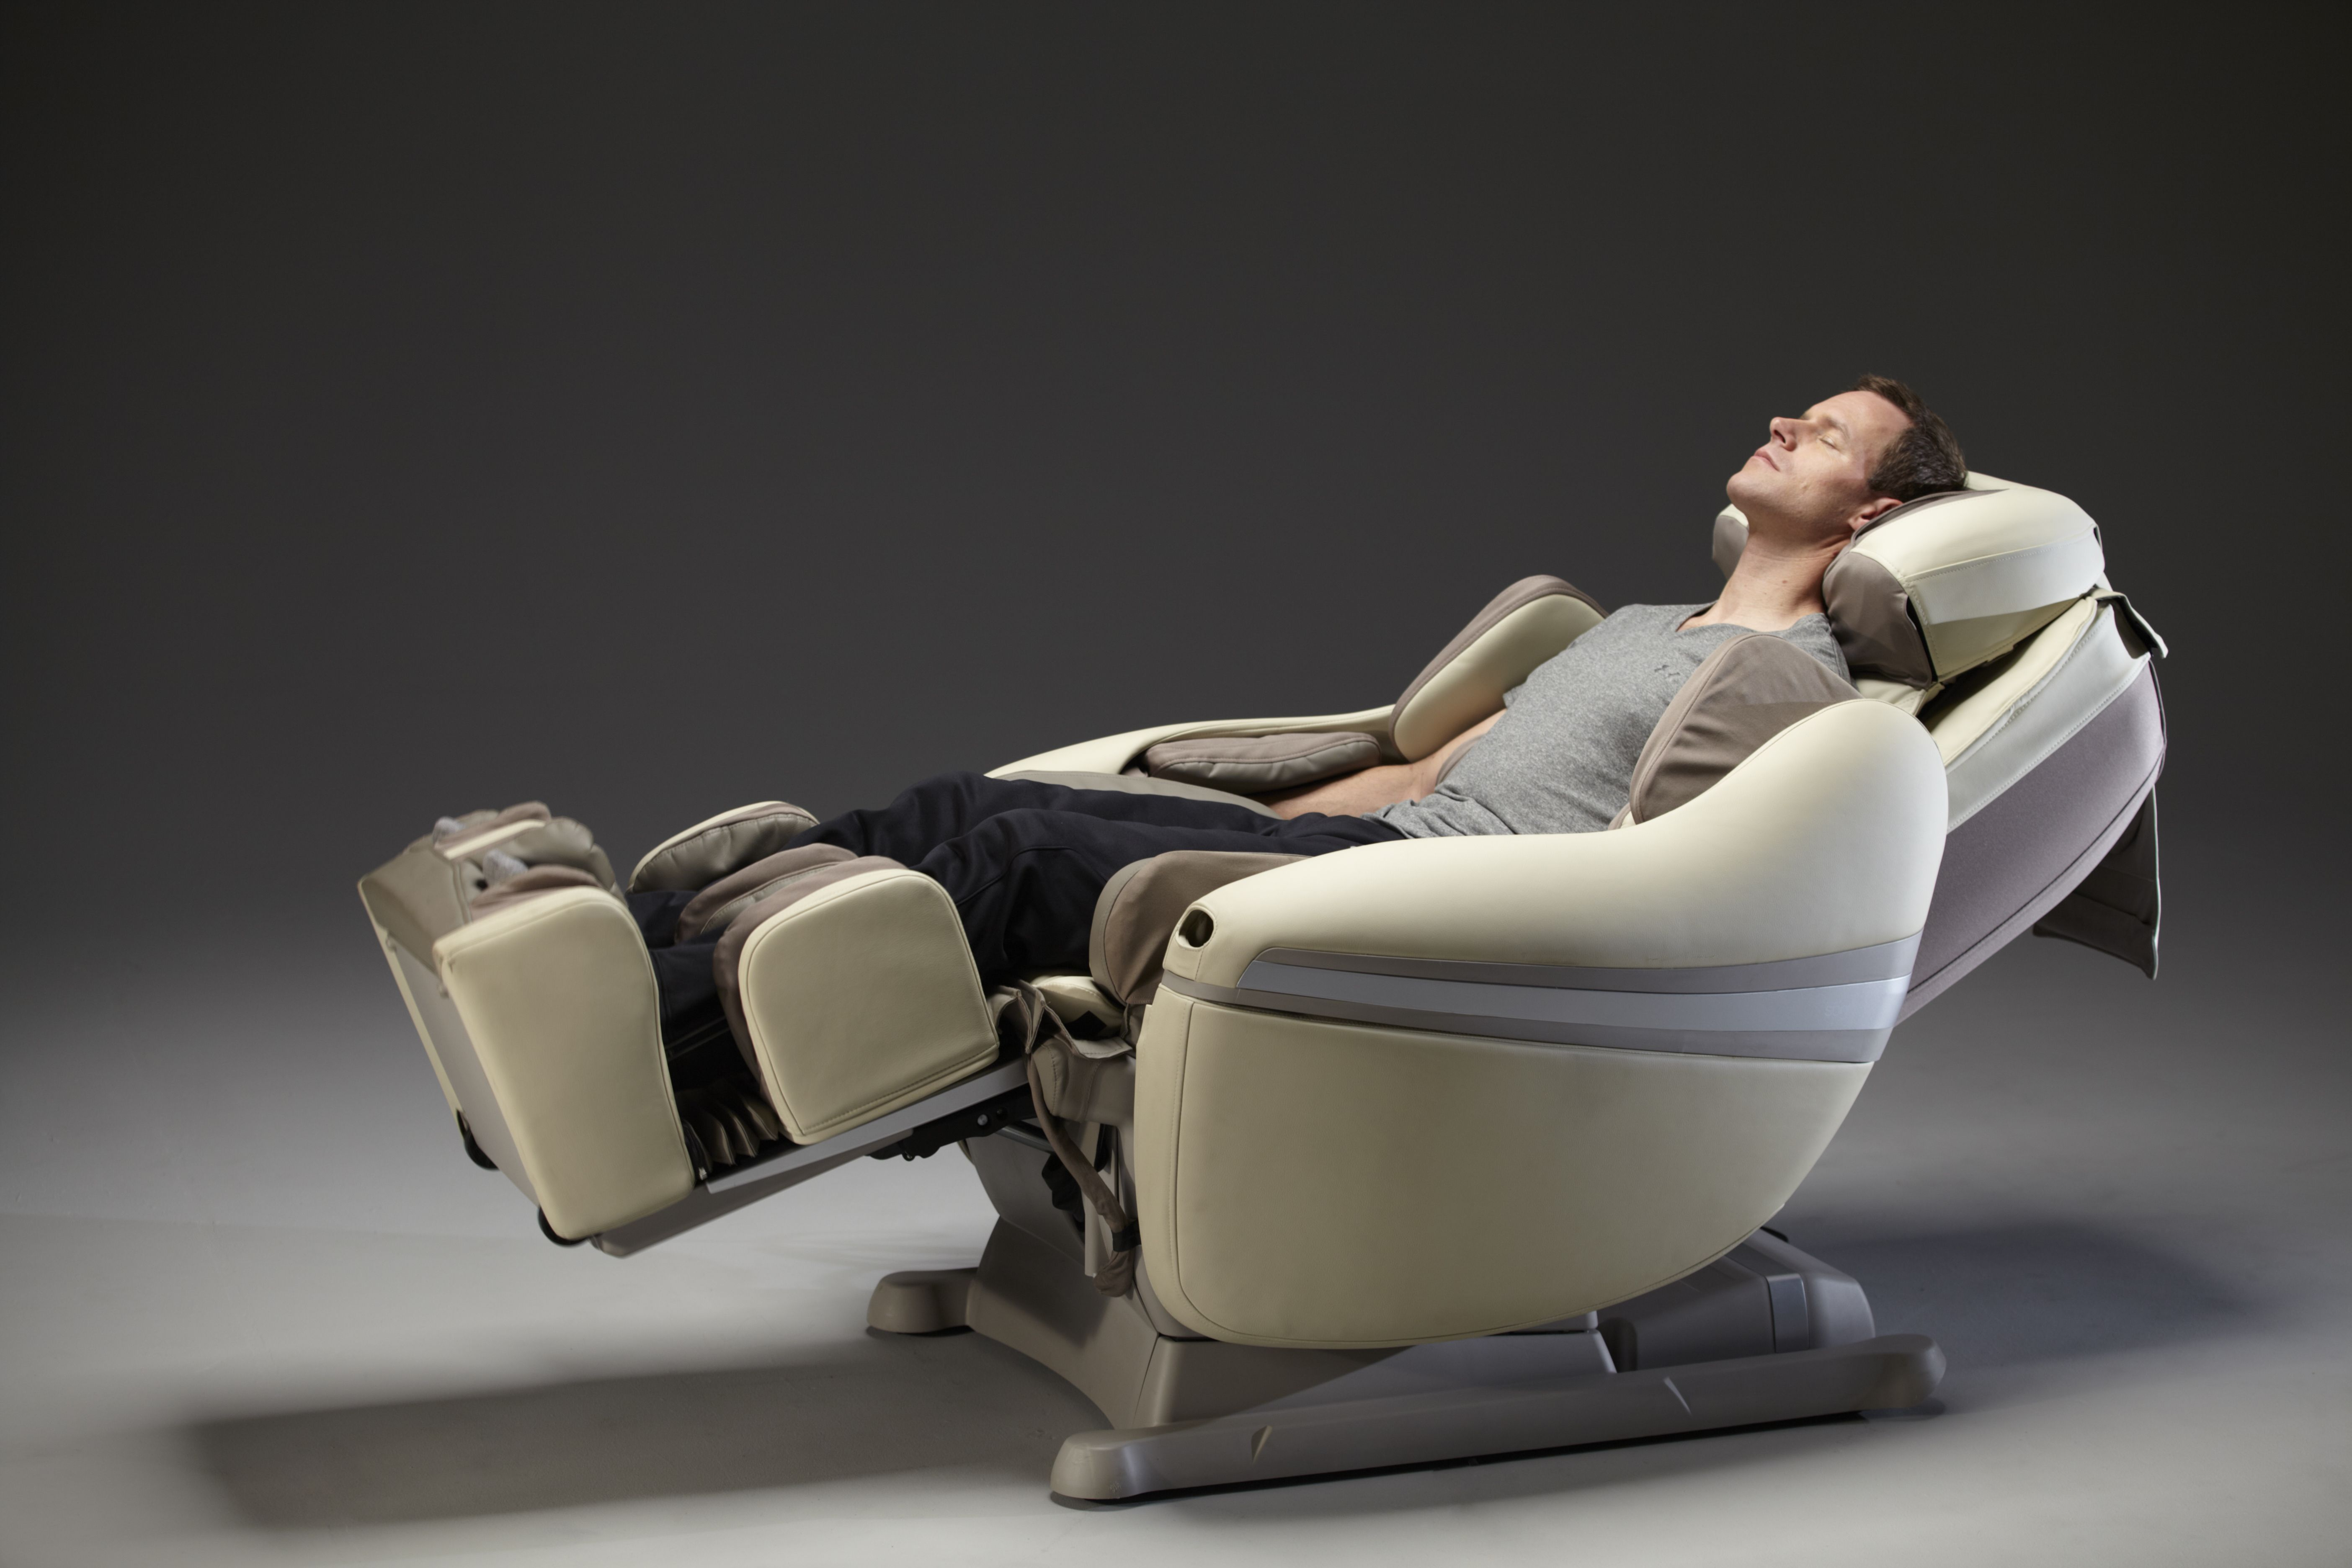 Inada DreamWave Massage Chair. Up to 170 degrees of